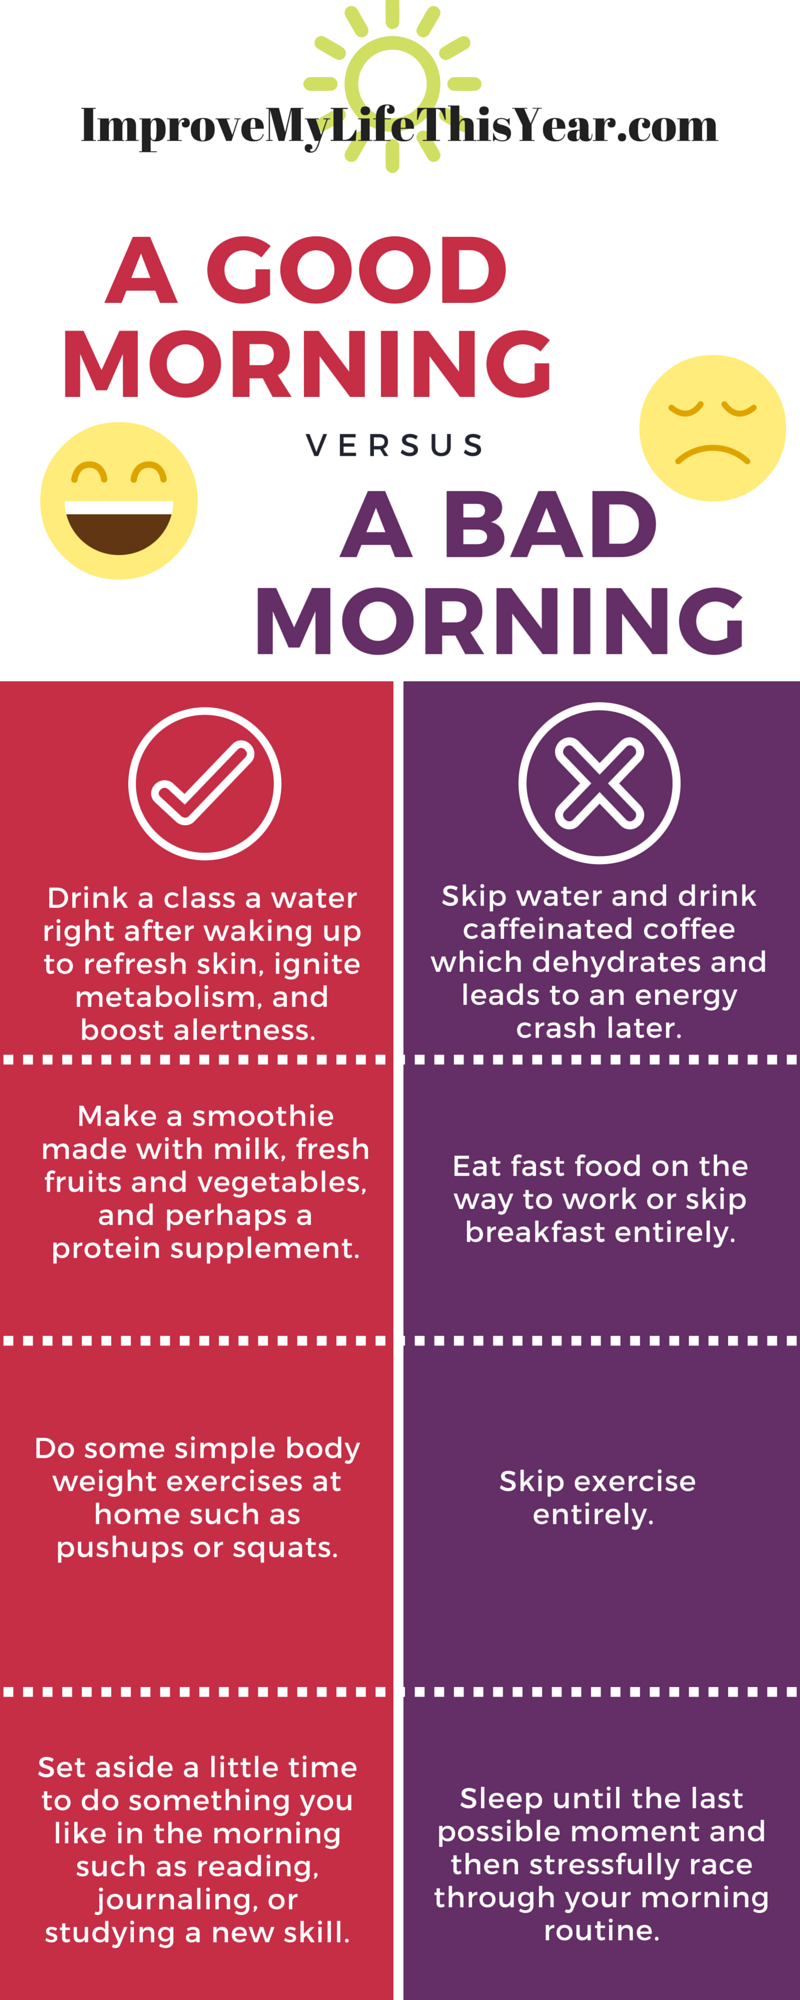 How to Have a Great Morning: 4 Steps to the Perfect Morning Routine